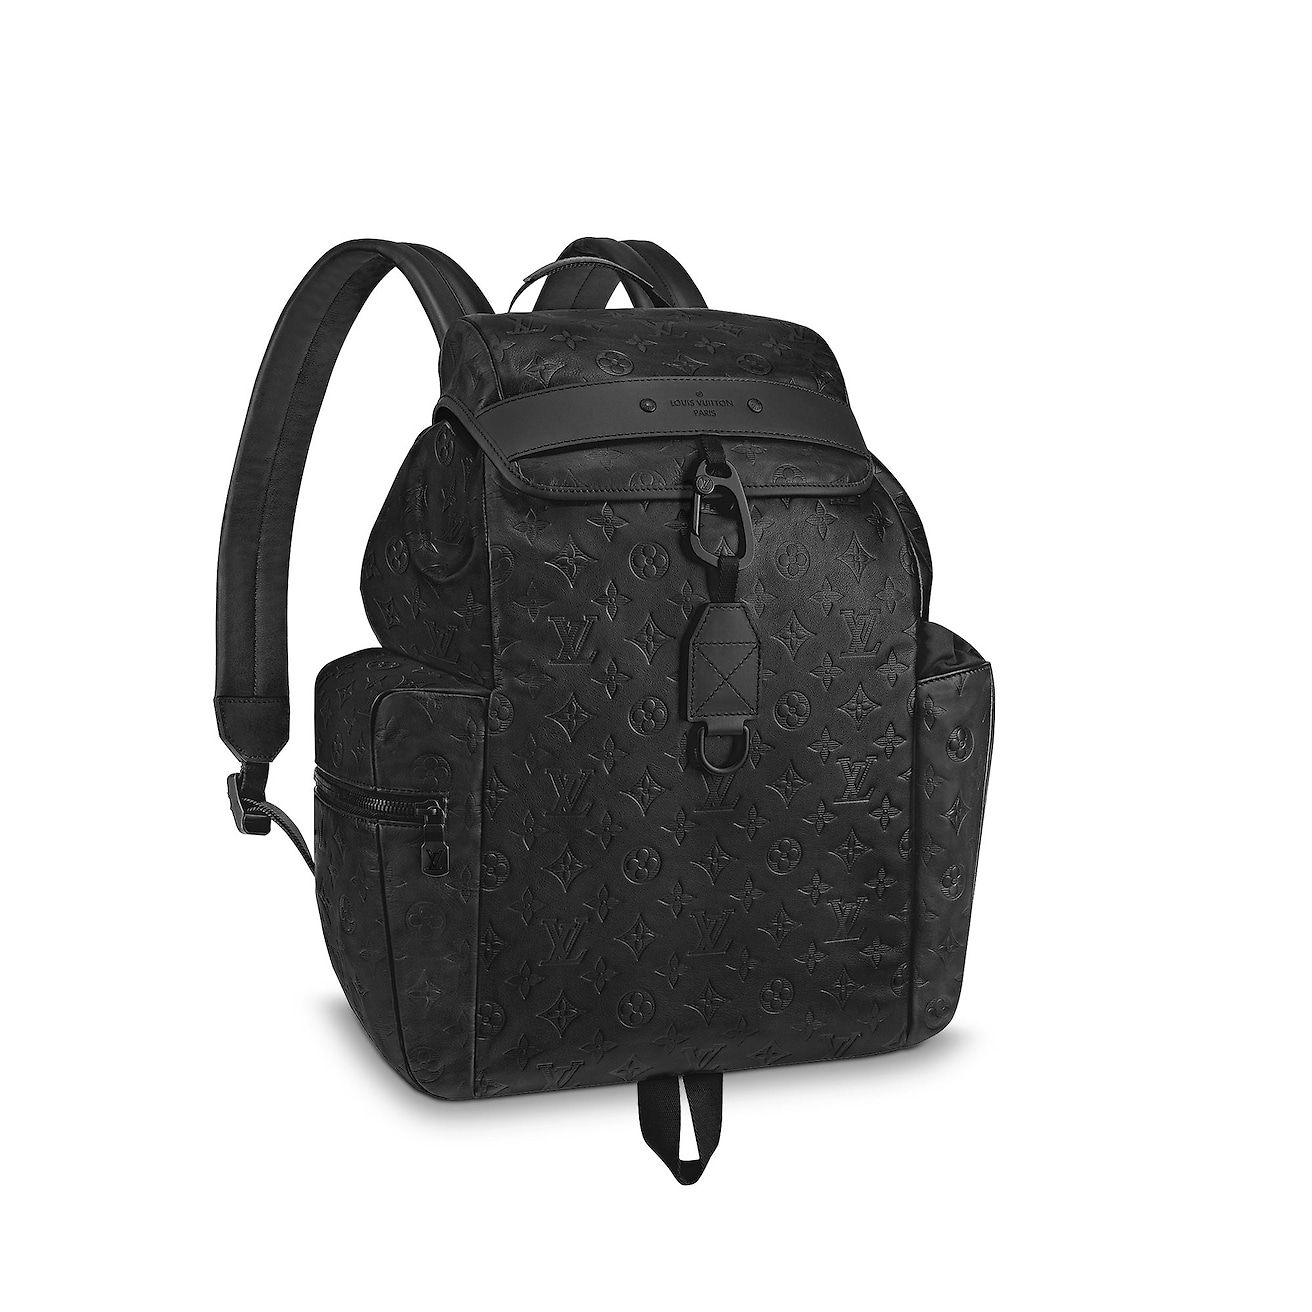 999482226d30 View 1 - Monogram Shadow ALPES STORY Bags Discovery Backpack